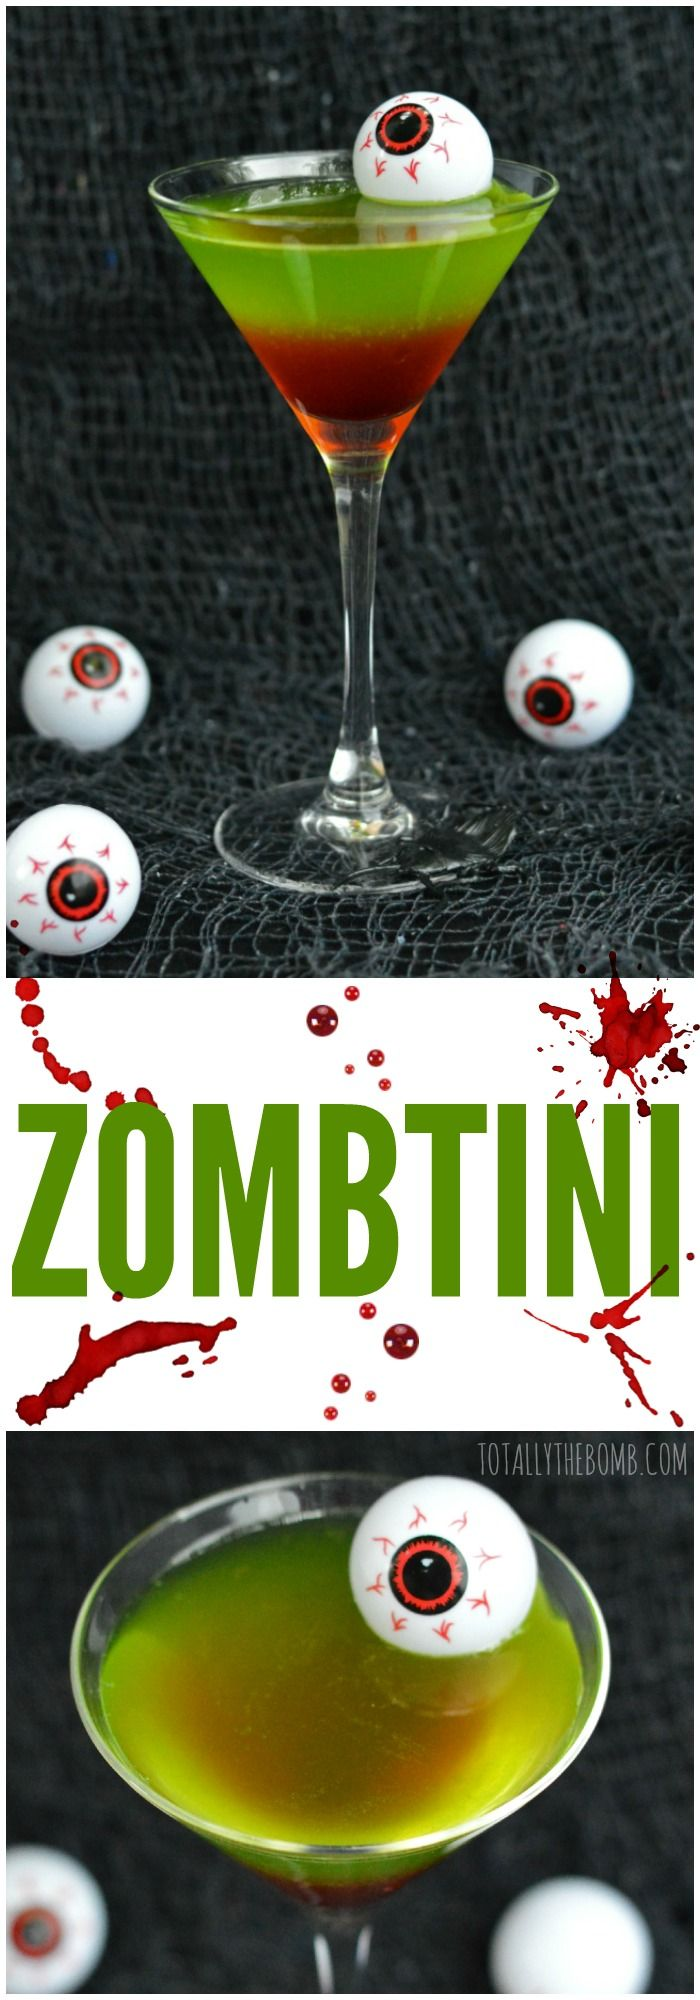 ZOMBTINI PINTEREST 1 oz. Captain Morgan White Rum 2 oz. Dekuyper Melon Liqueur 1 oz. 100% Pineapple Juice 0.5 oz. Sprite Dash of Grenadine (garnish) Ice Cocktail Shaker